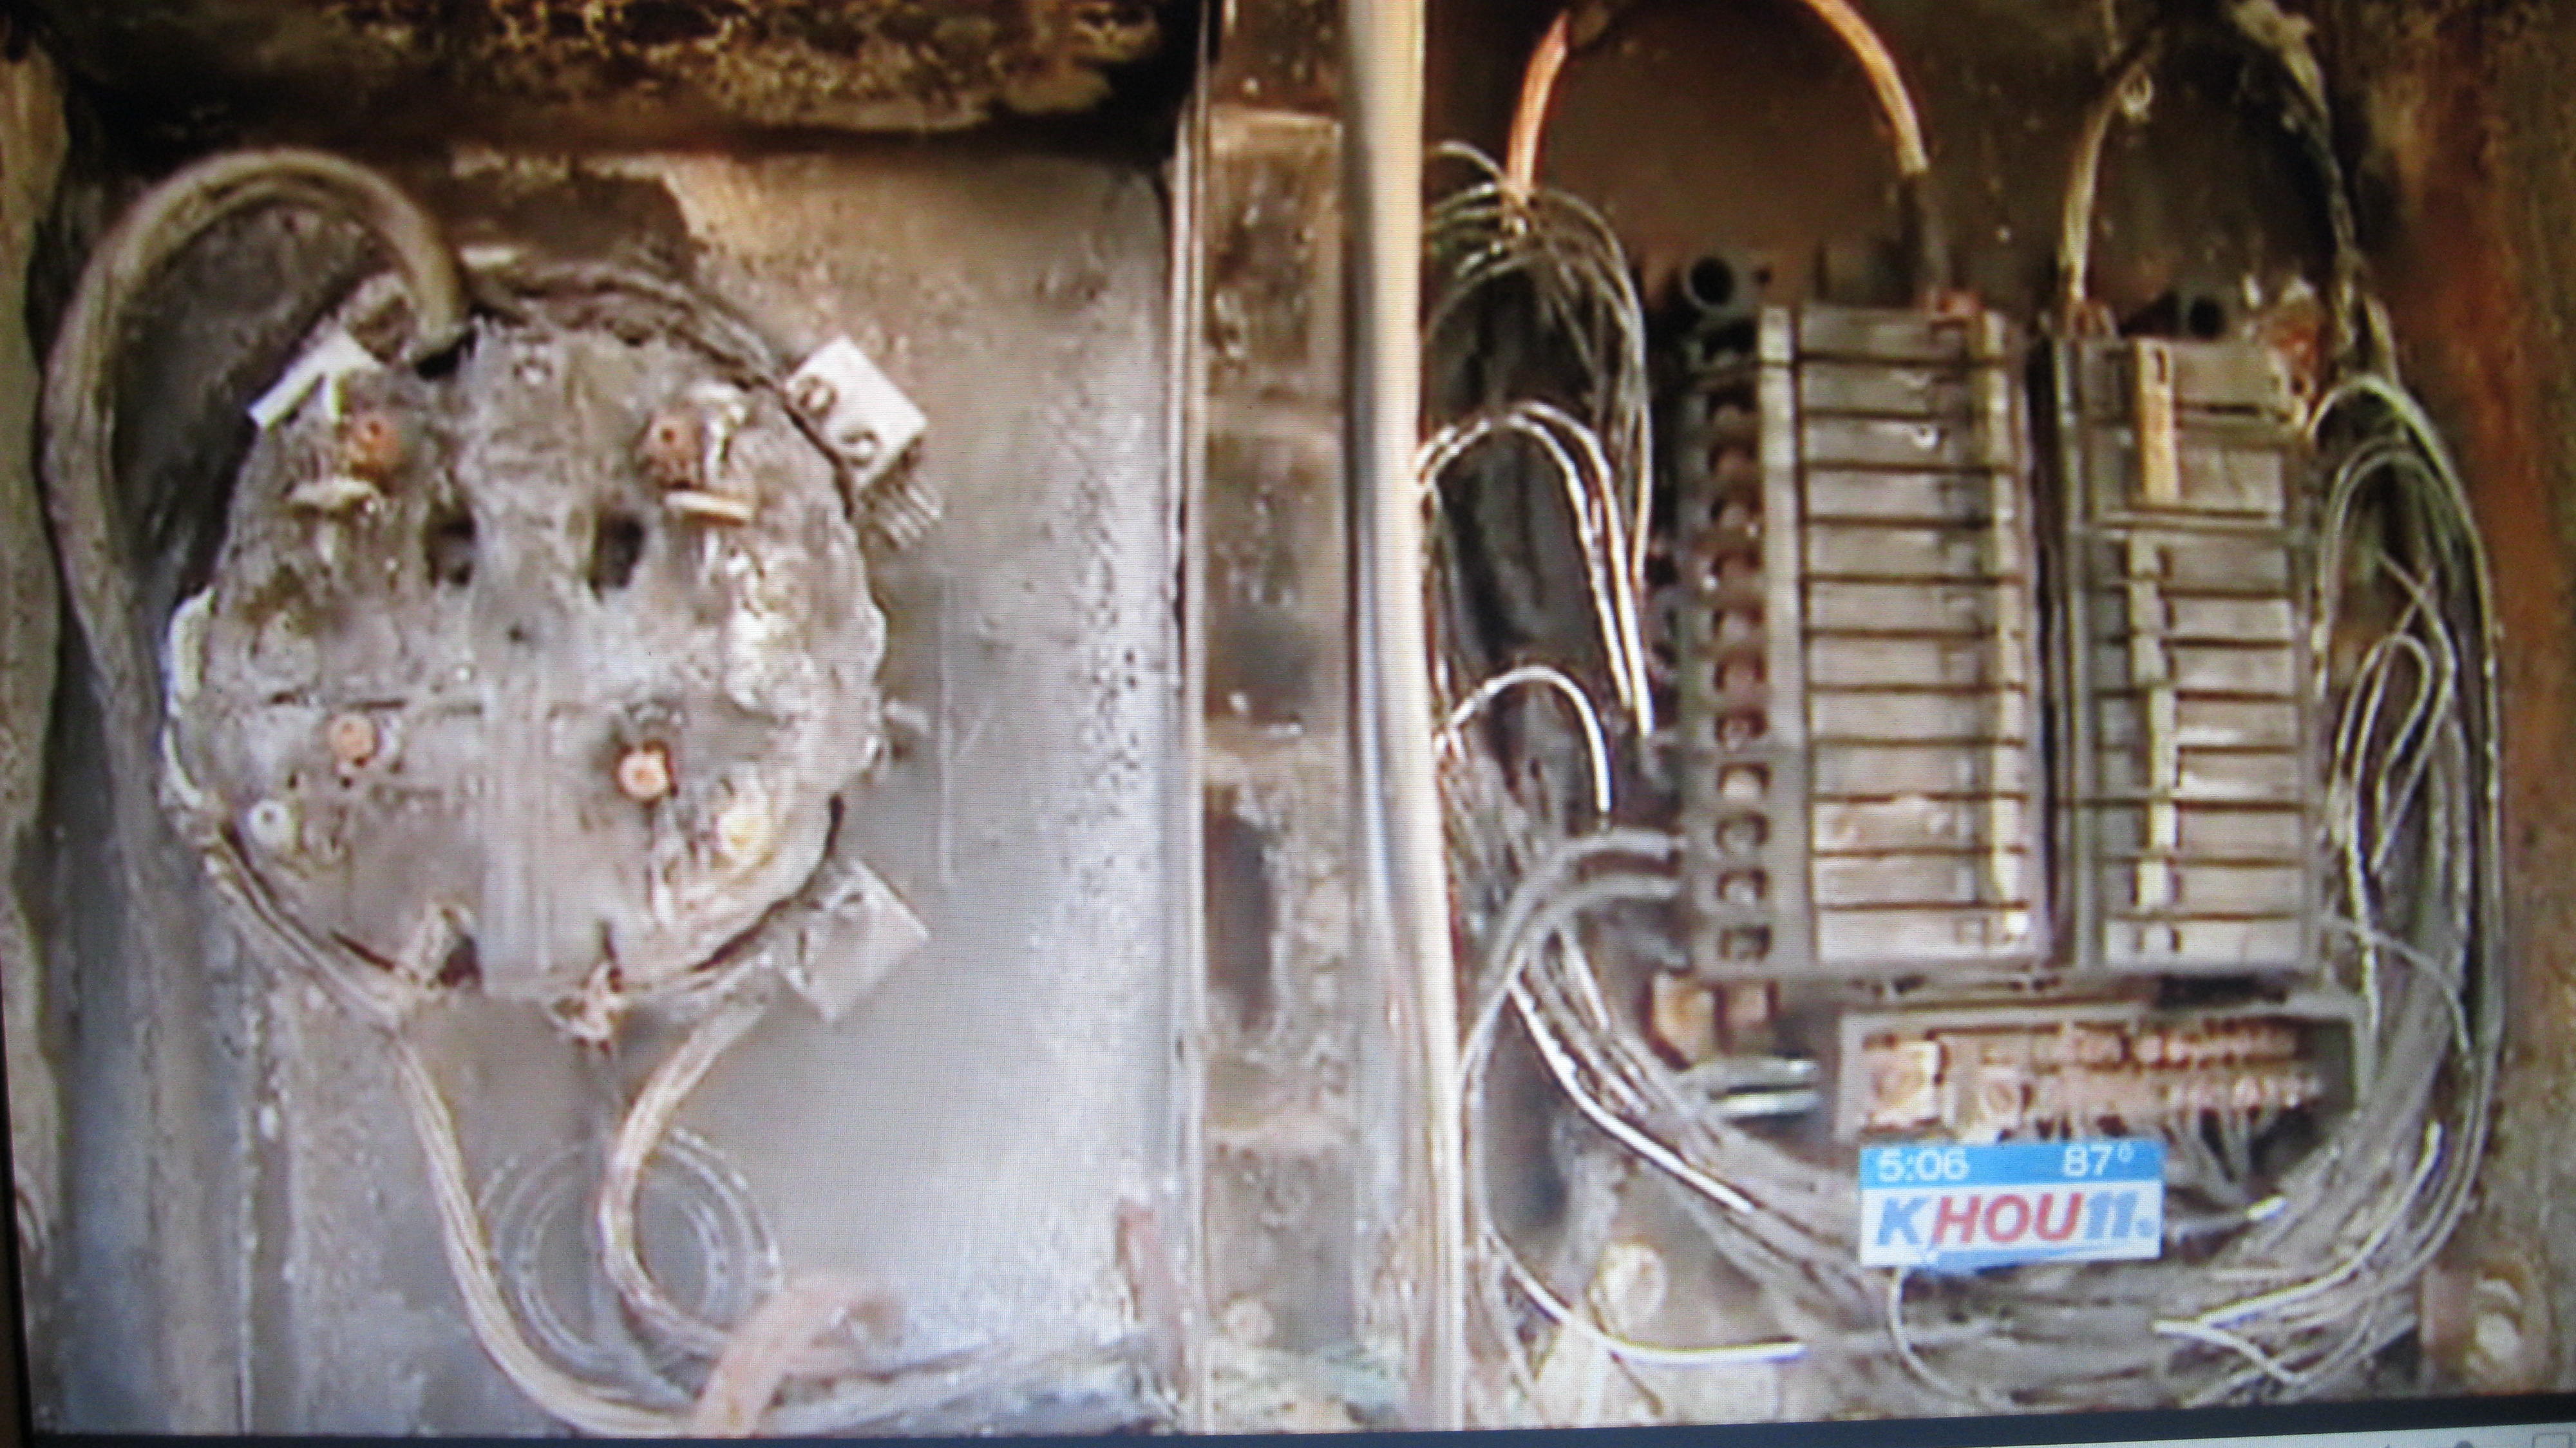 Smart Meter Fires And Explosions Emf Safety Network Wiring Garage Lights Moreover Tiny House With Screen Porch On 8 23 2012 Houston Fire A Southwest Woman Is Blaming For That Left Her Home In Shambles July